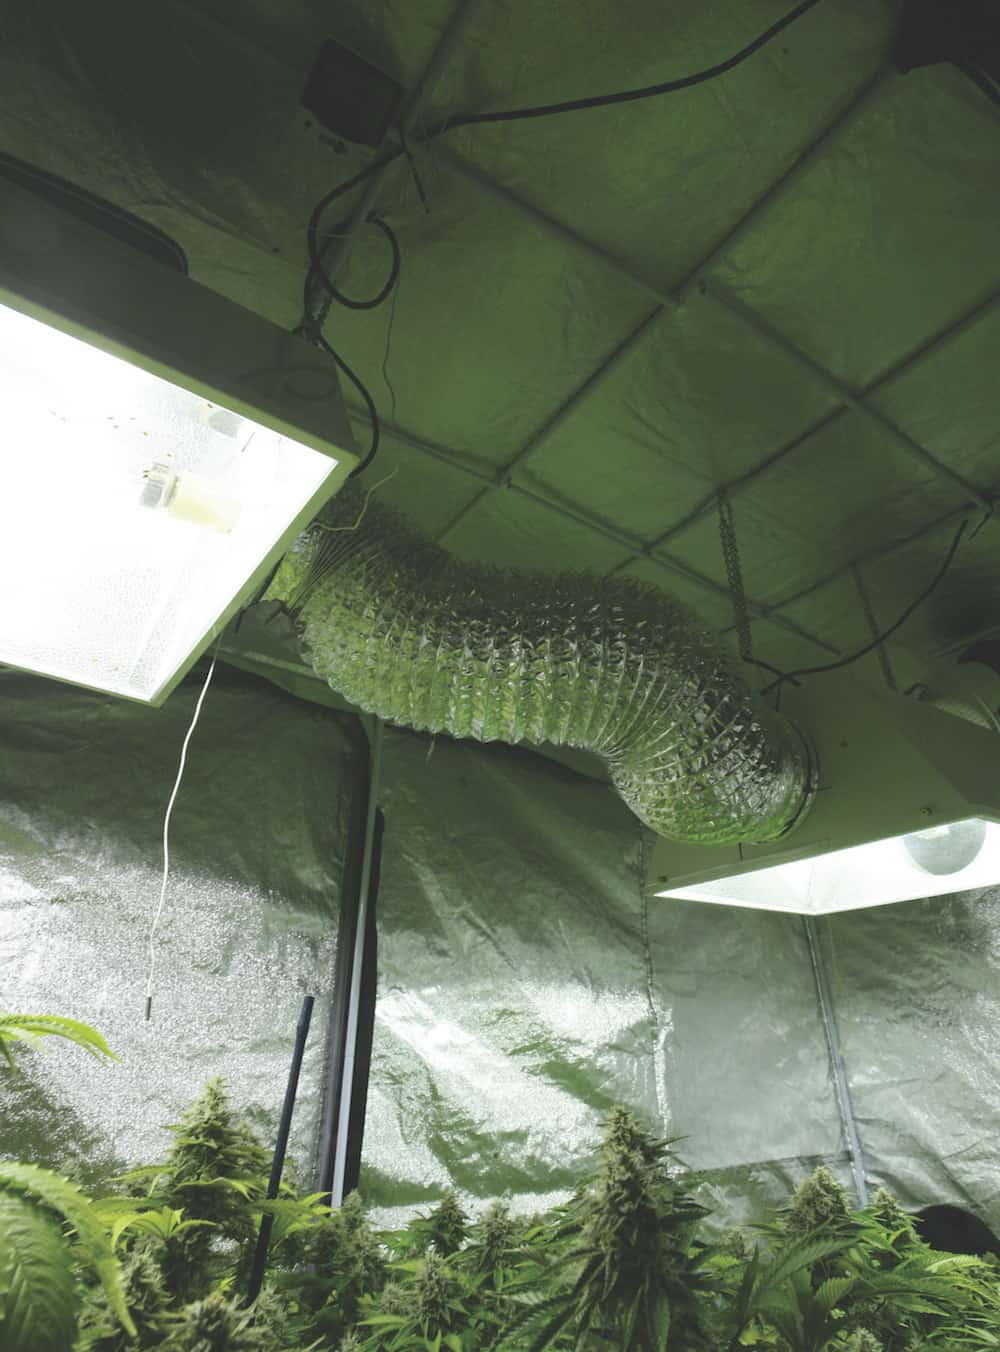 The Ins and Outs of Growing Cannabis at Home